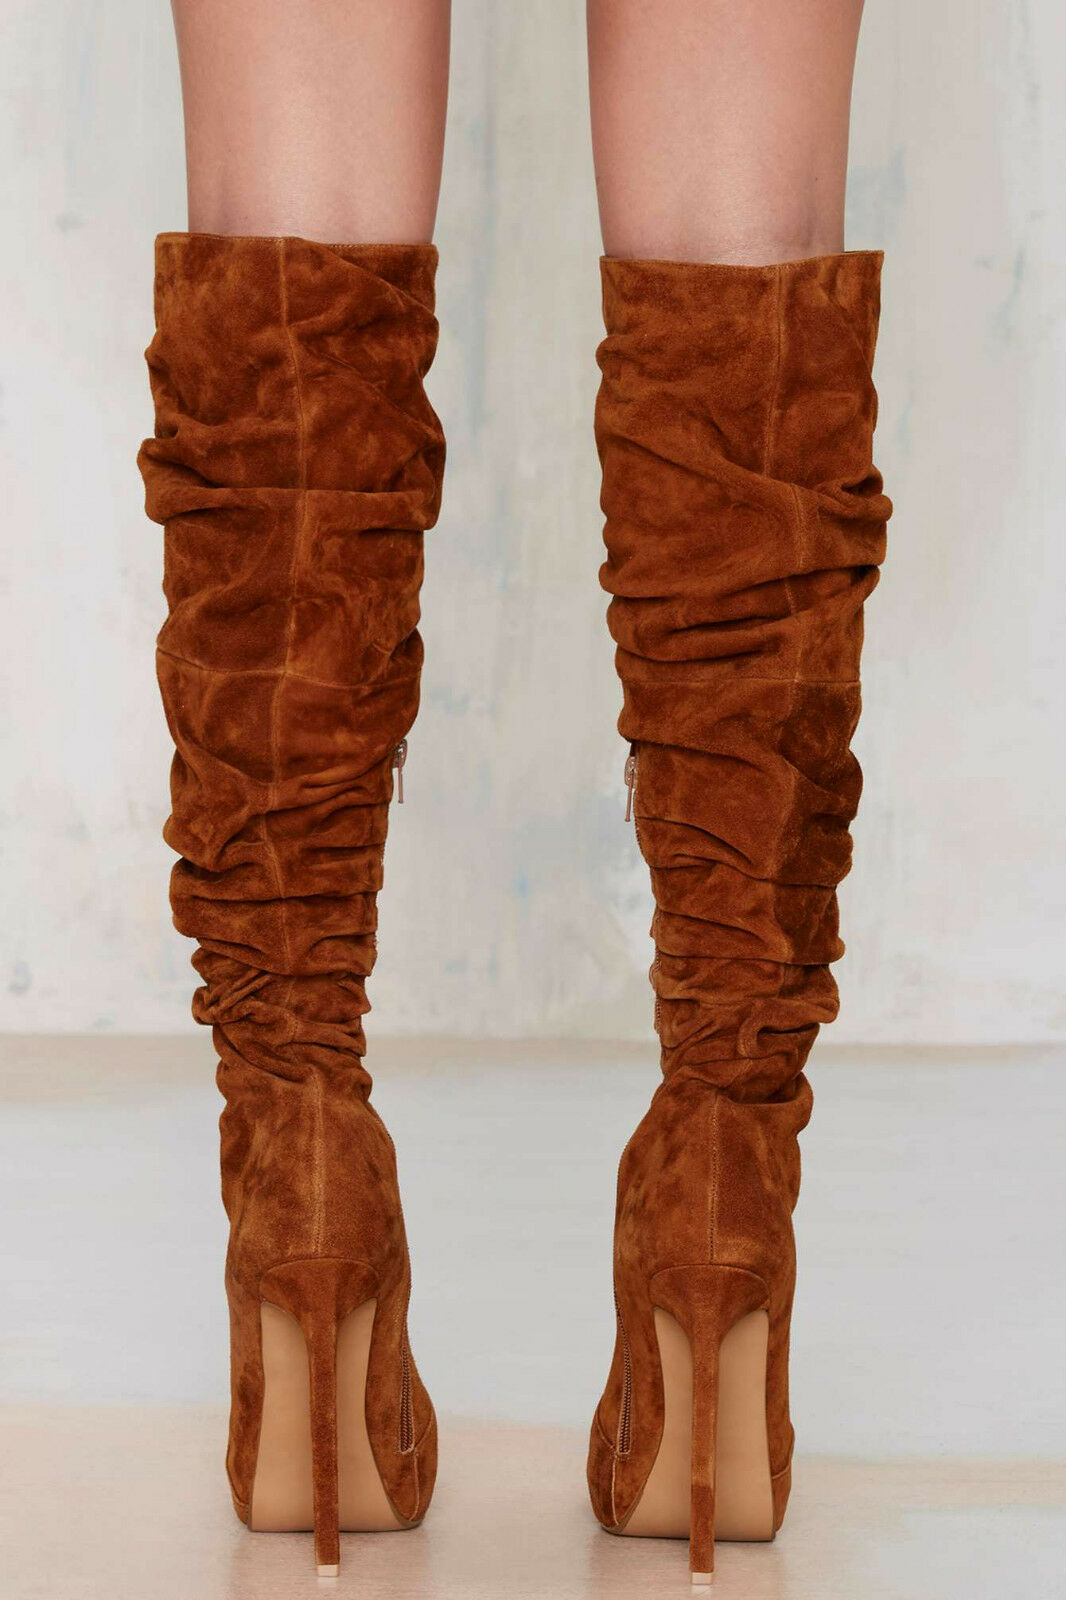 NEW SUEDE JEFFREY CAMPBELL 290 TAN CHESTNUT ALAMODE SUEDE NEW Stiefel Schuhe SZ 6.5 2ed460